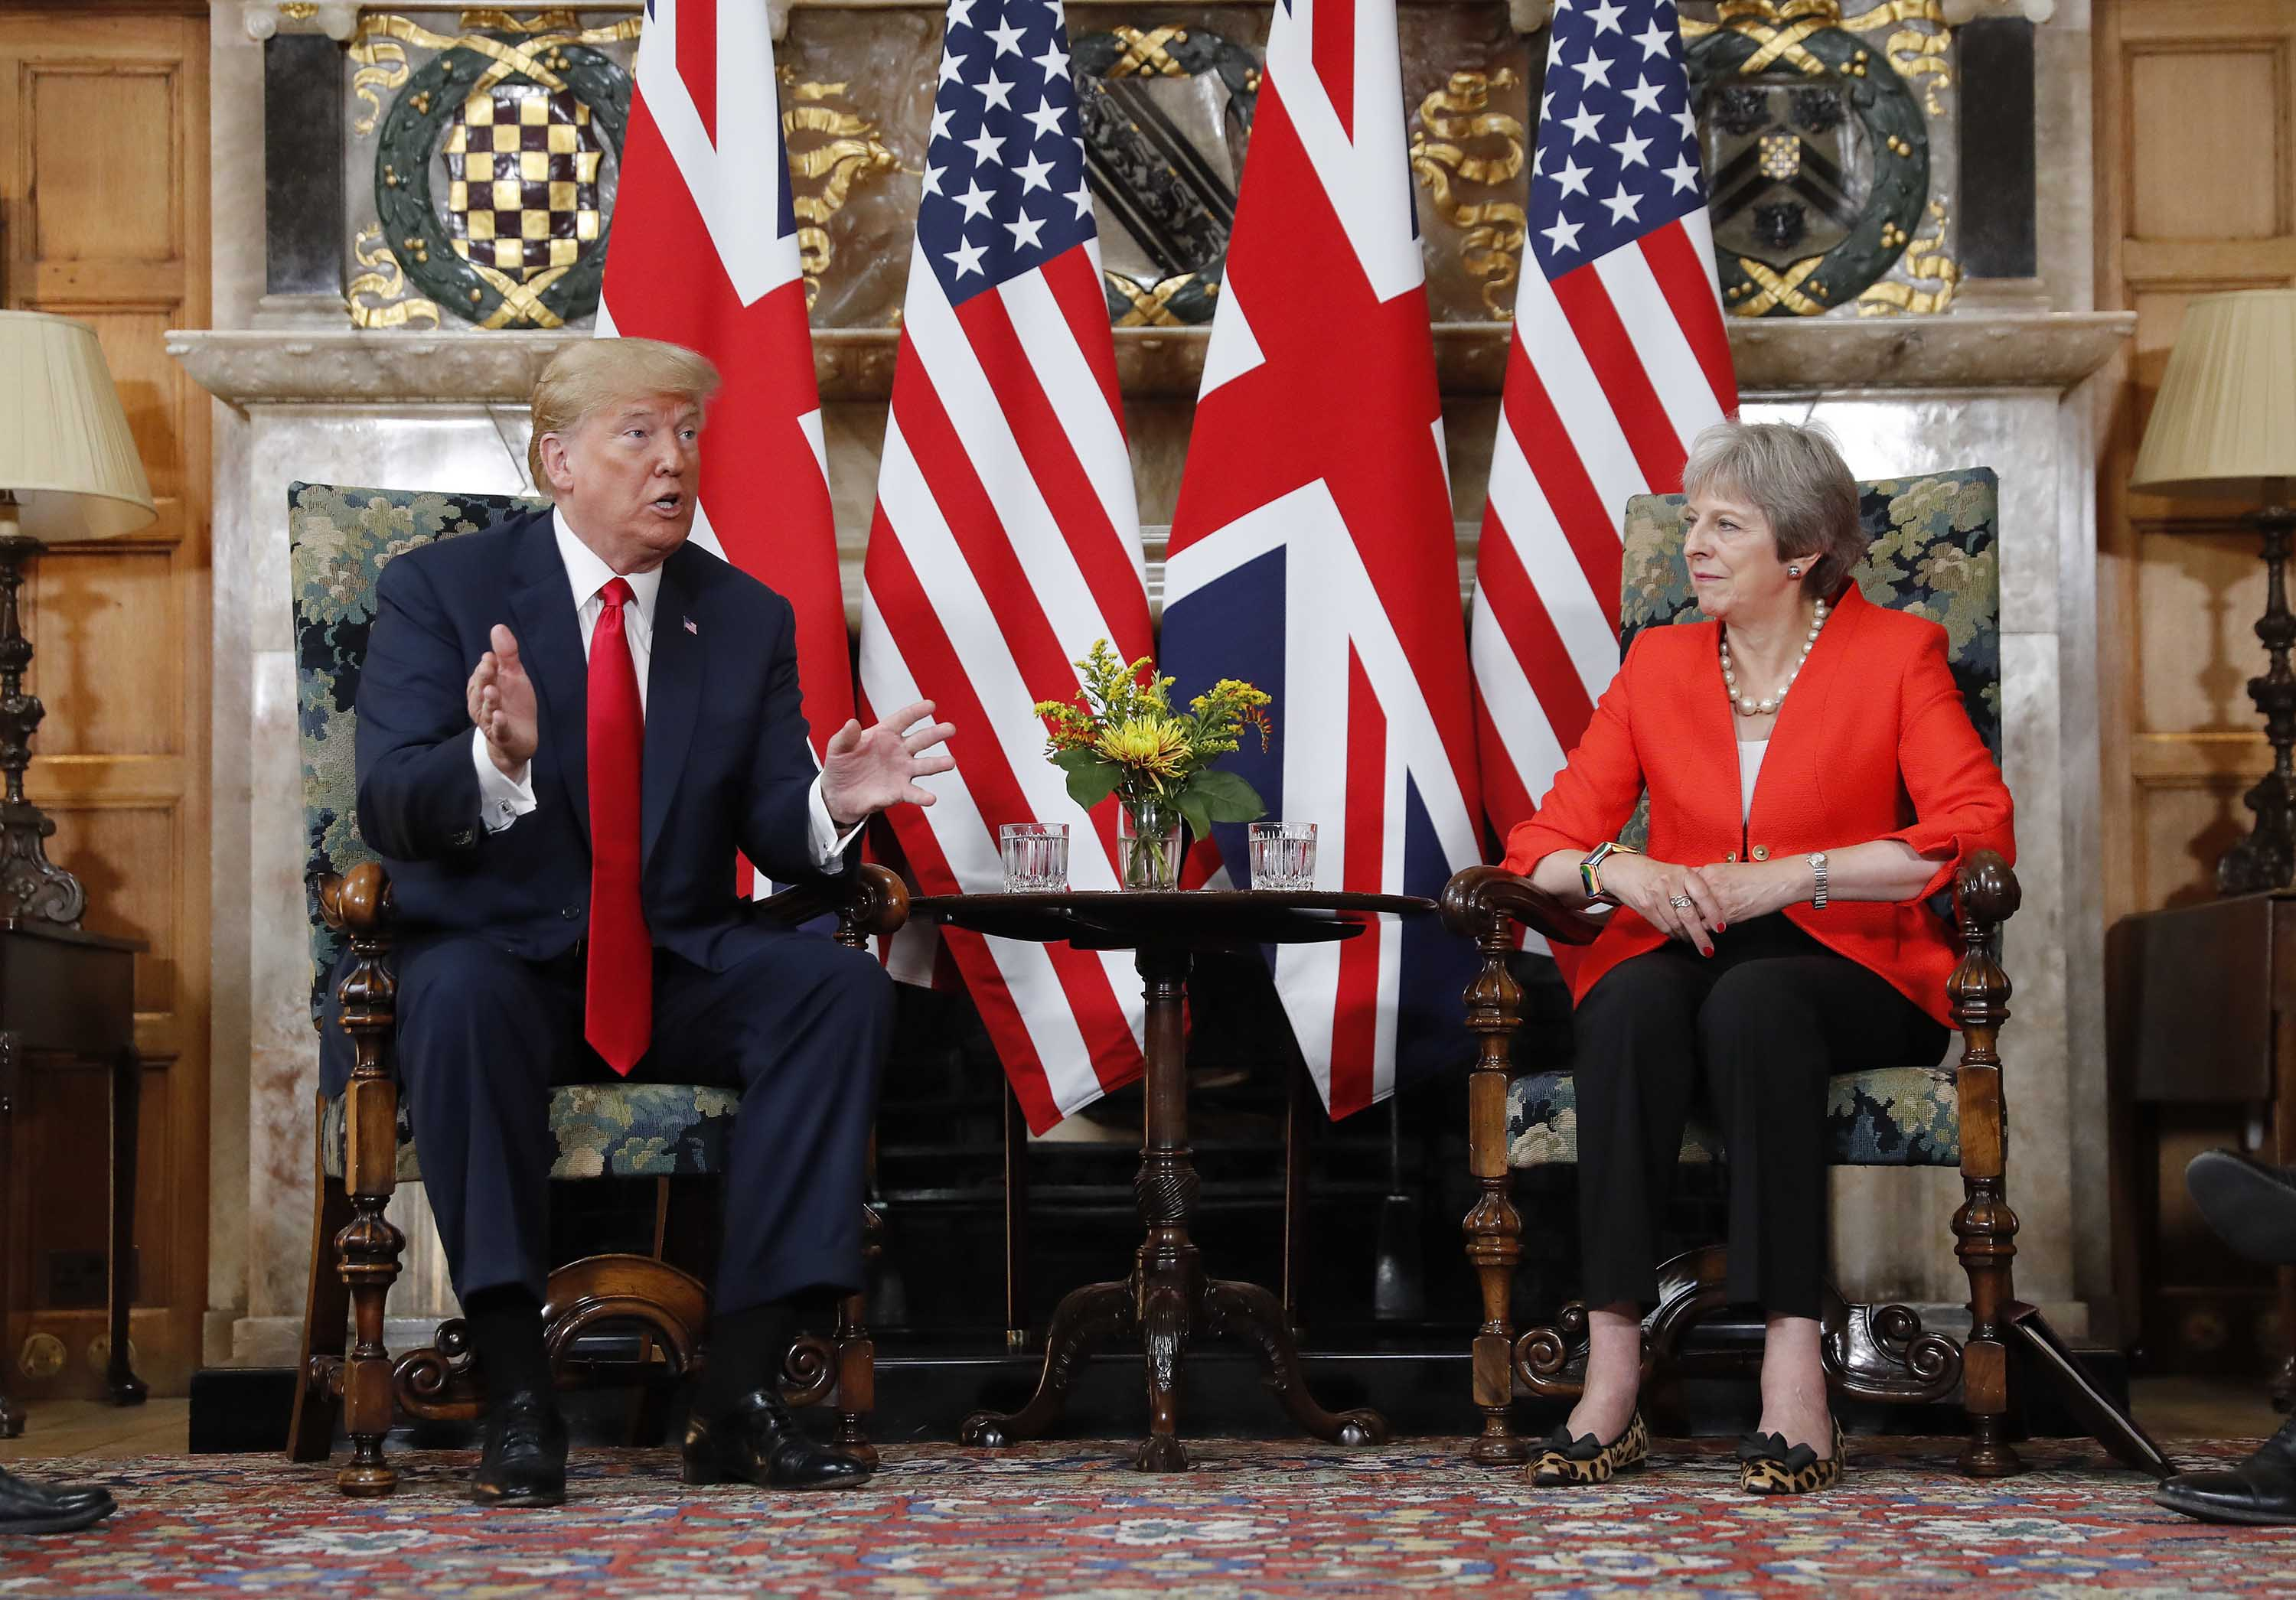 180713112437-01-trump-may-chequers-0713.jpg